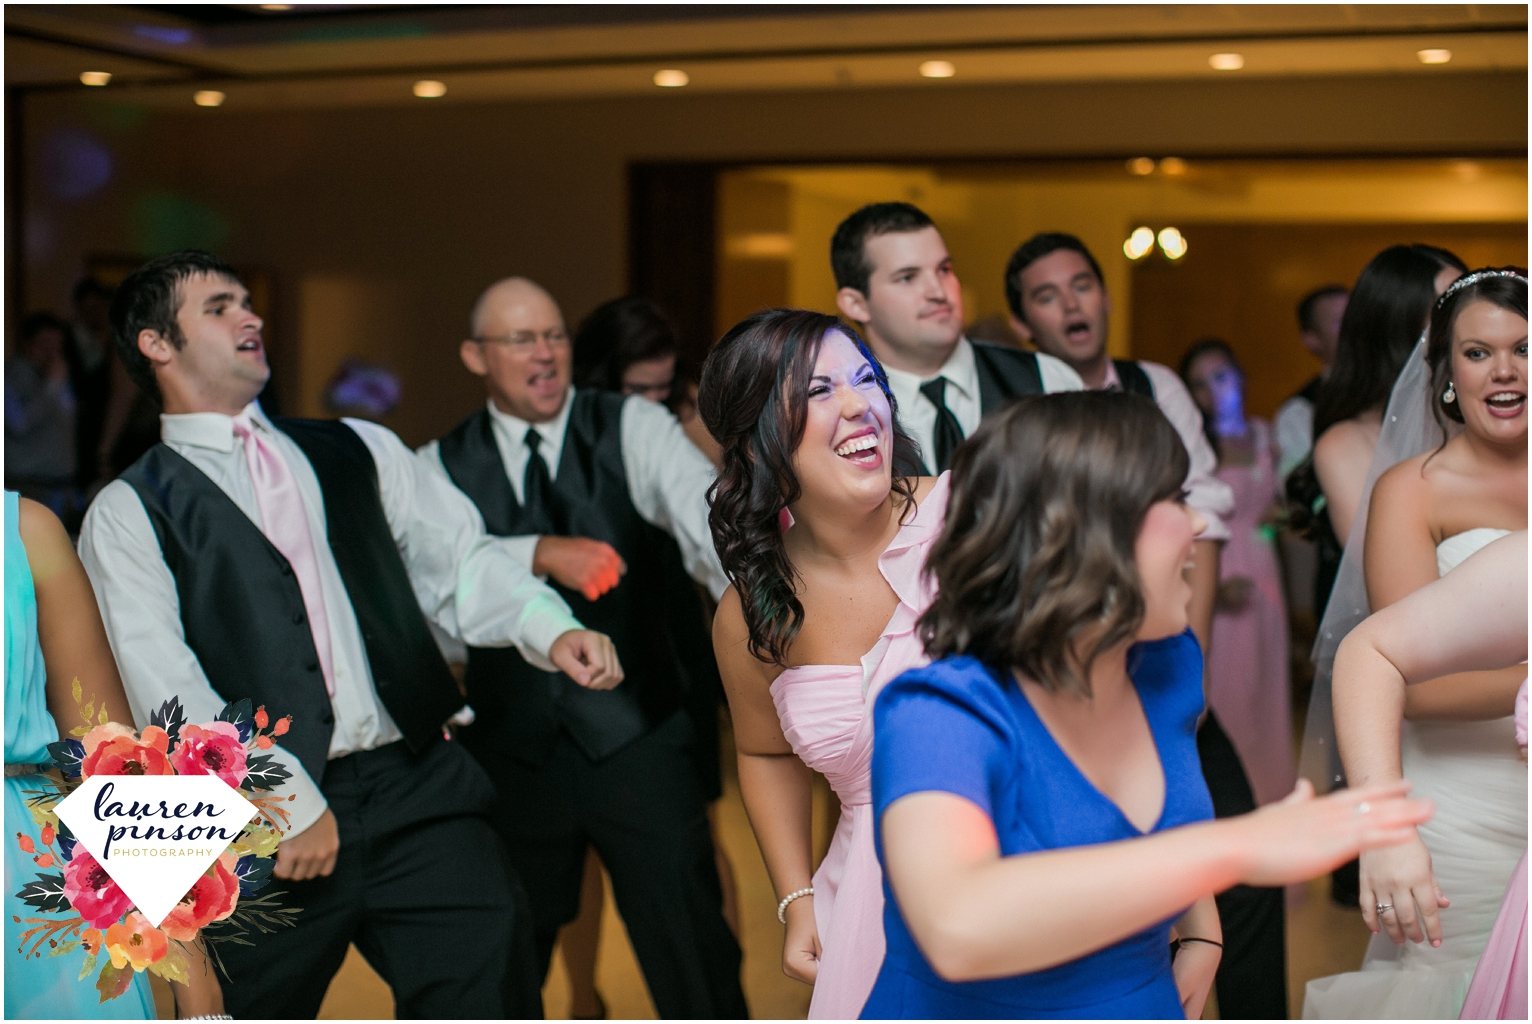 wichita-falls-wedding-photographer-kemp-center-at-the-forum-photography-two-clever-chicks_1081.jpg